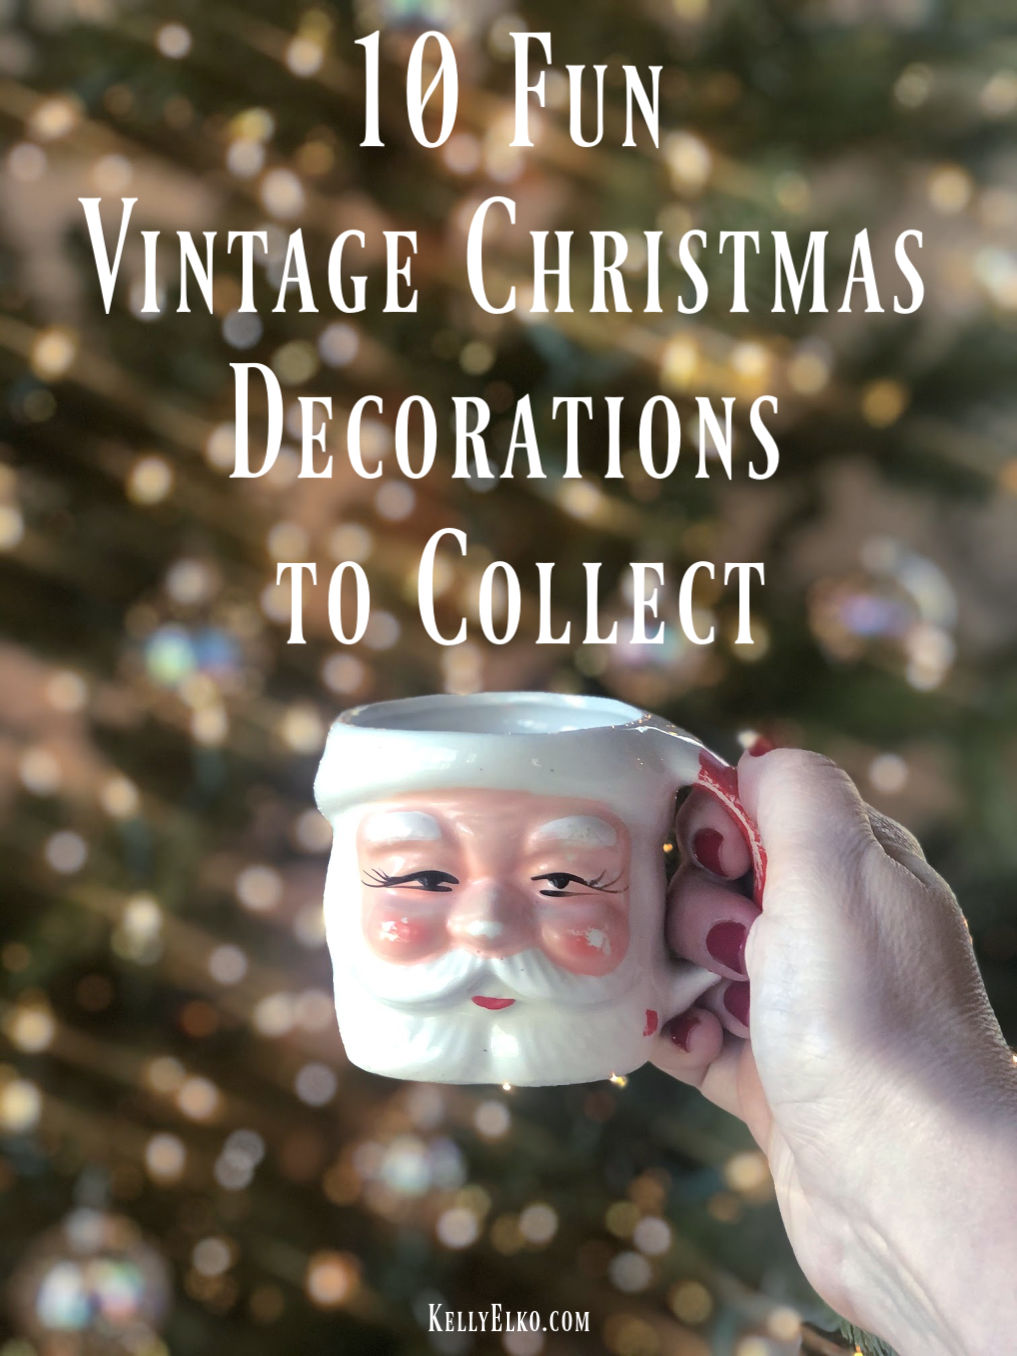 10 Fun Vintage Christmas Decorations to Collect kellyelko.com #christmas #vintagechristmas #vintage #collectibles #christmasdecor #santa #santamug #farmhousechristmas #retrochristmas